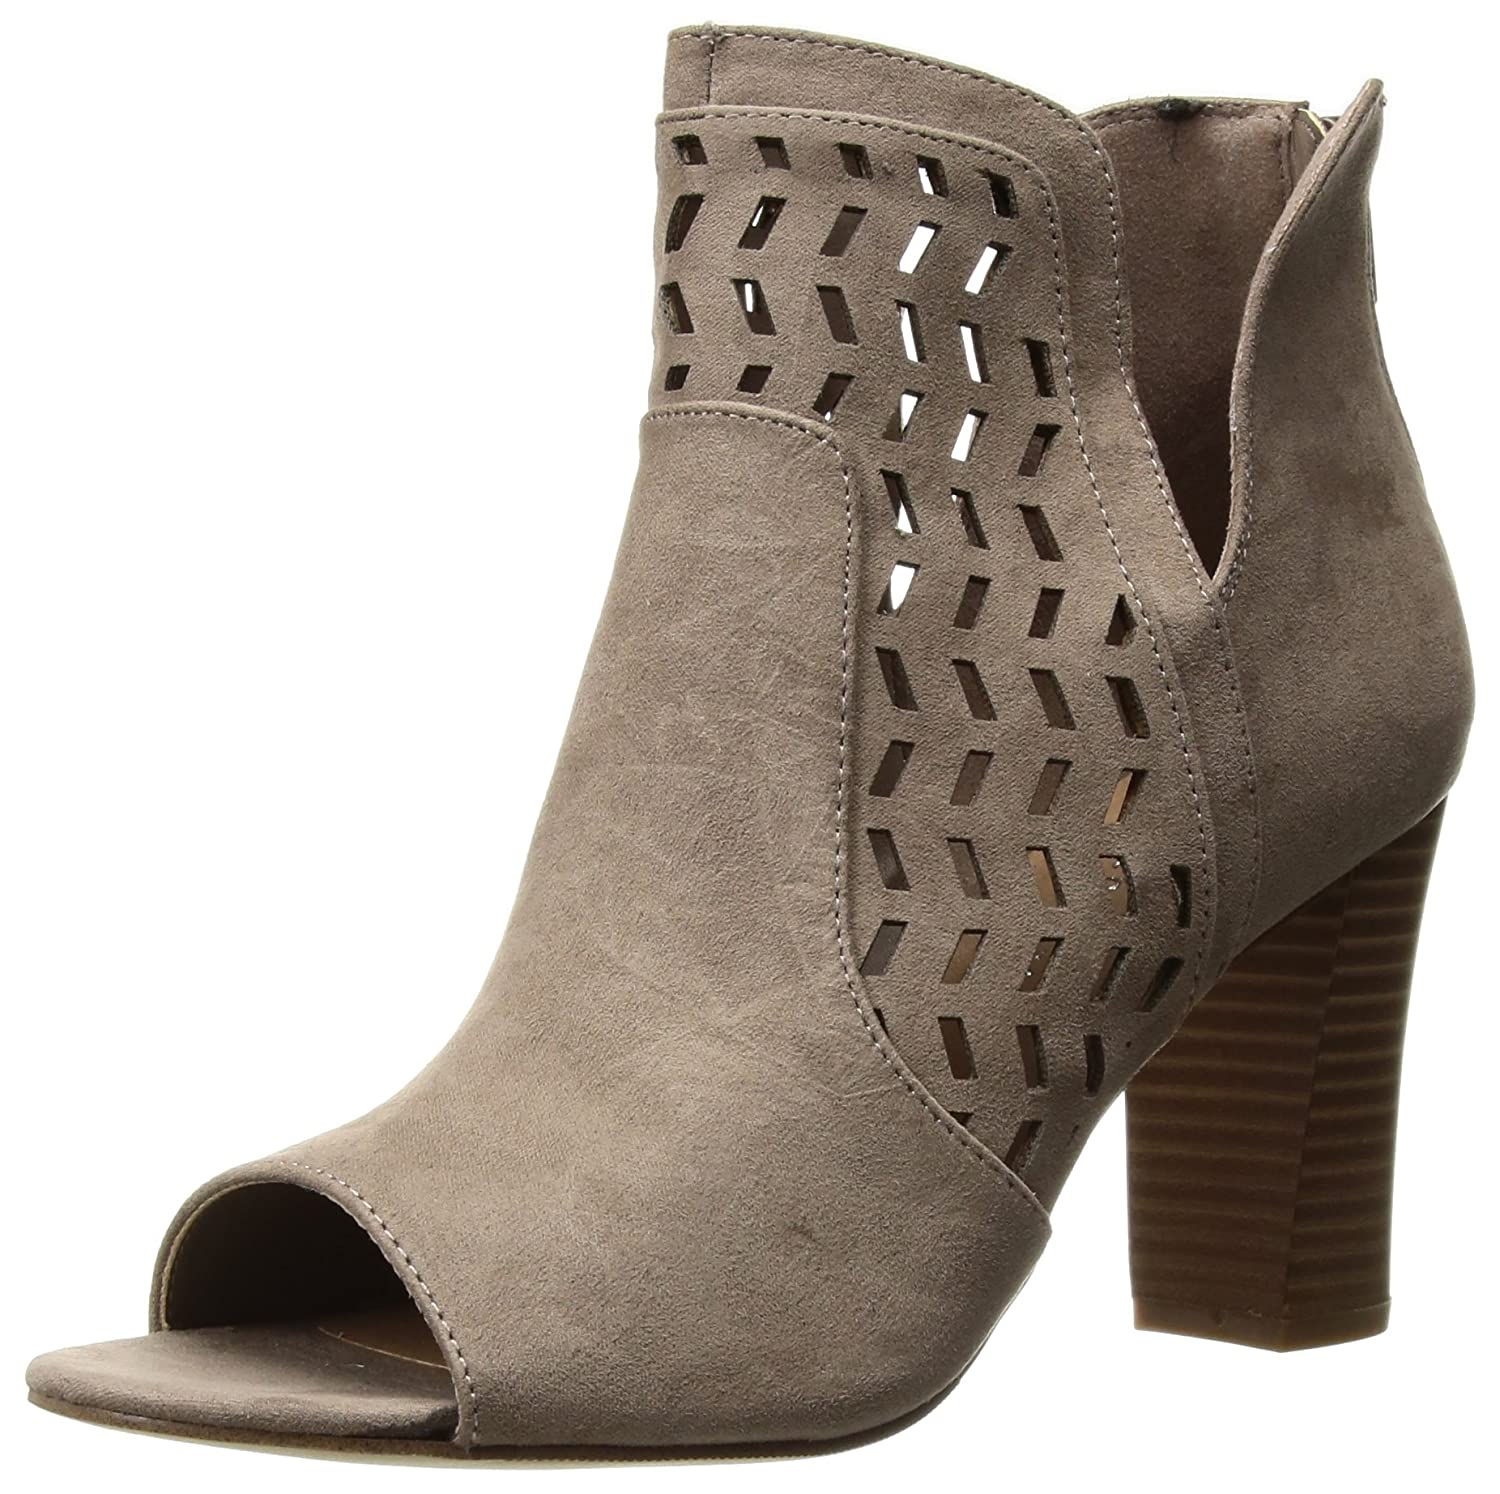 Madden Girl Women's Bright Ankle Boot B0753QDTVC 7 B(M) US|Dark Taupe